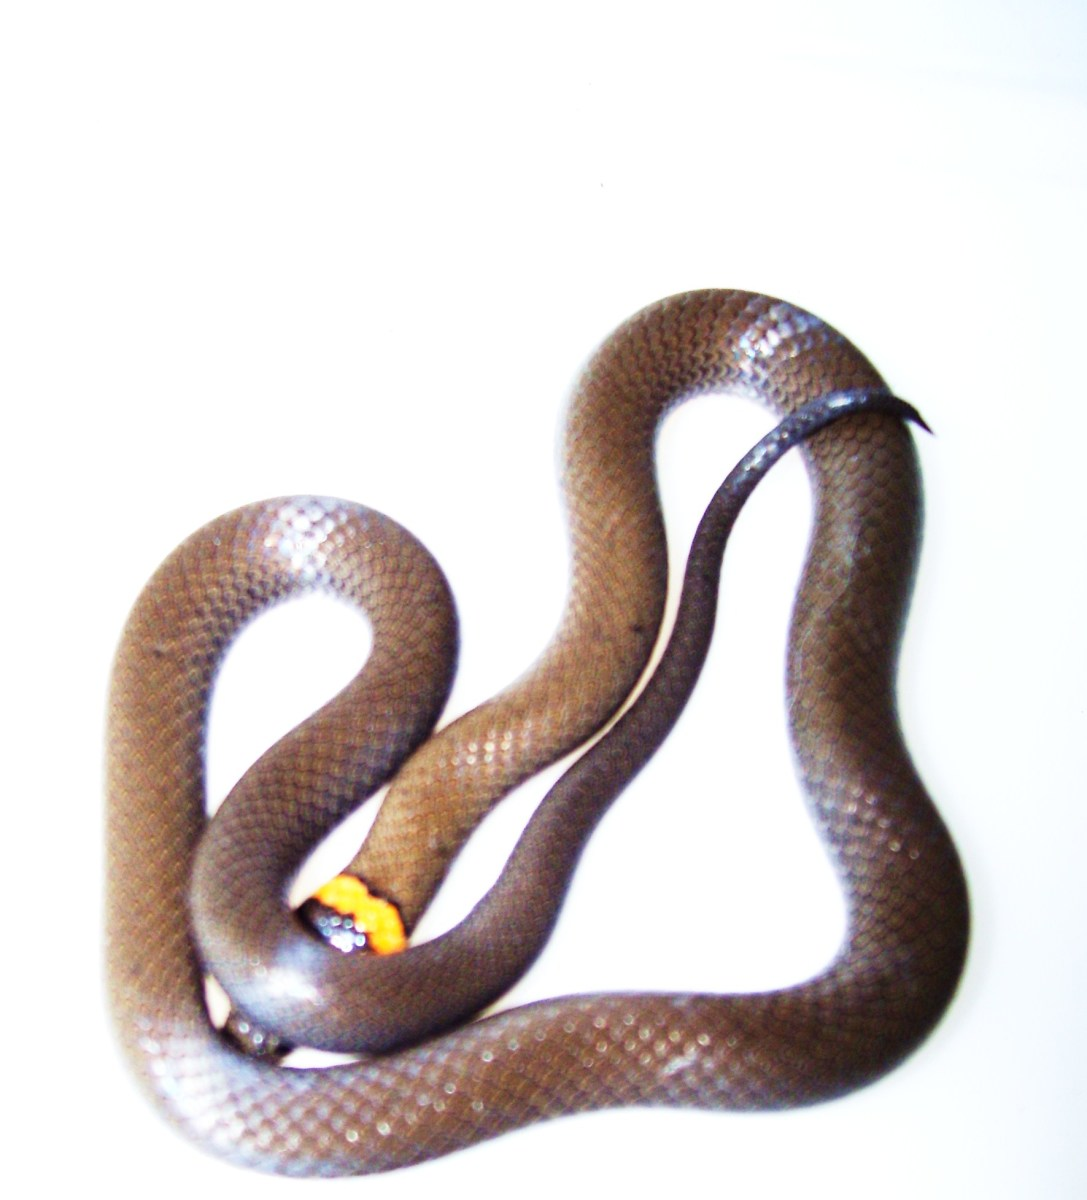 The ringneck snake is actually a shy pet.